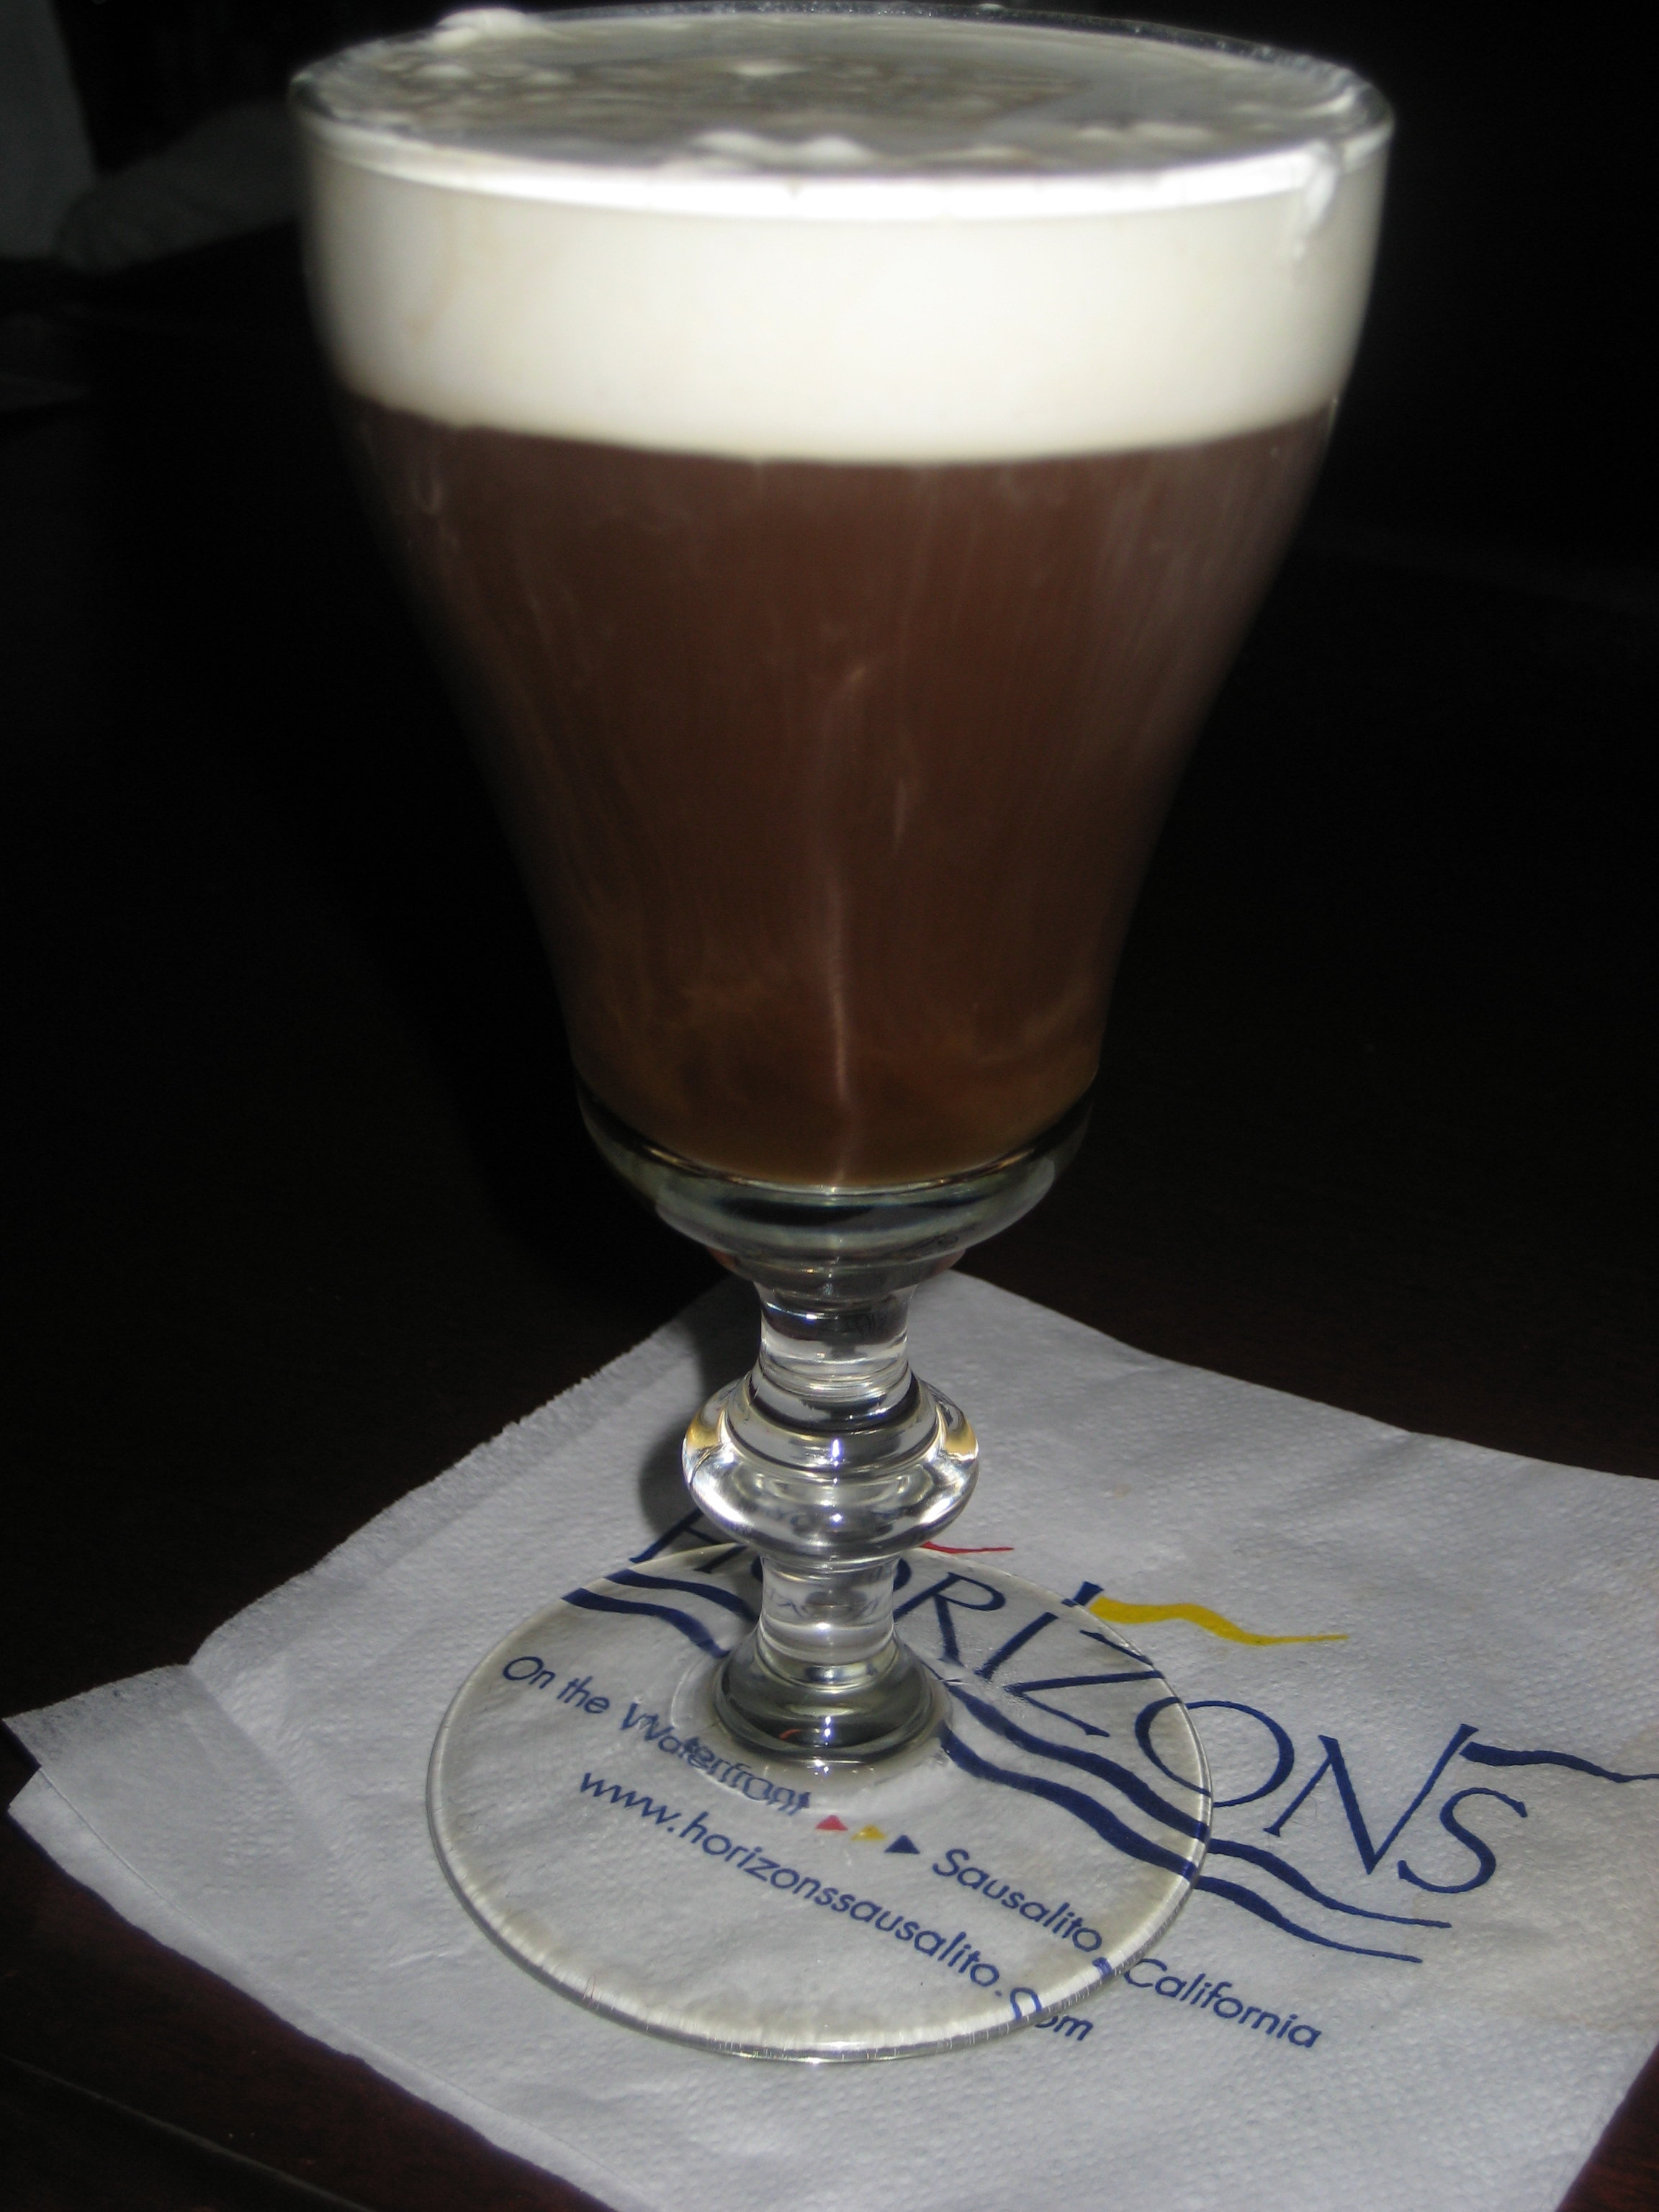 My Irish coffee.